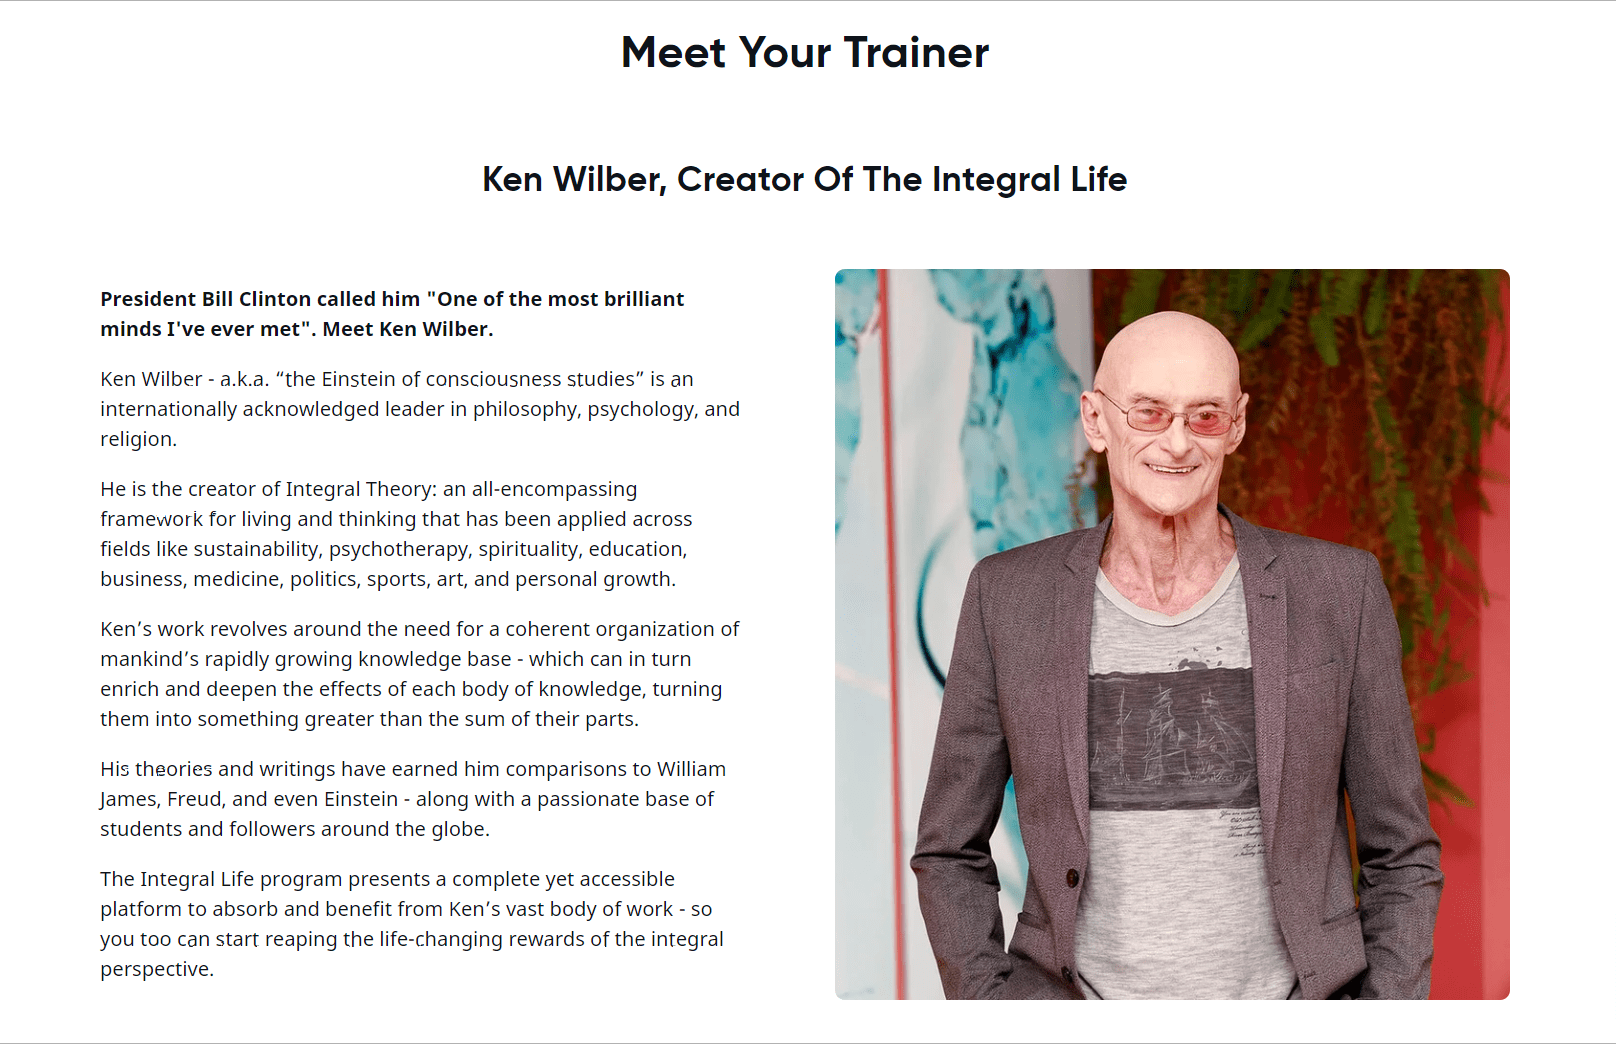 Creator of Integral Life By Ken Wilber- Review Of Integral Life By Ken Wilber On Mindvalley